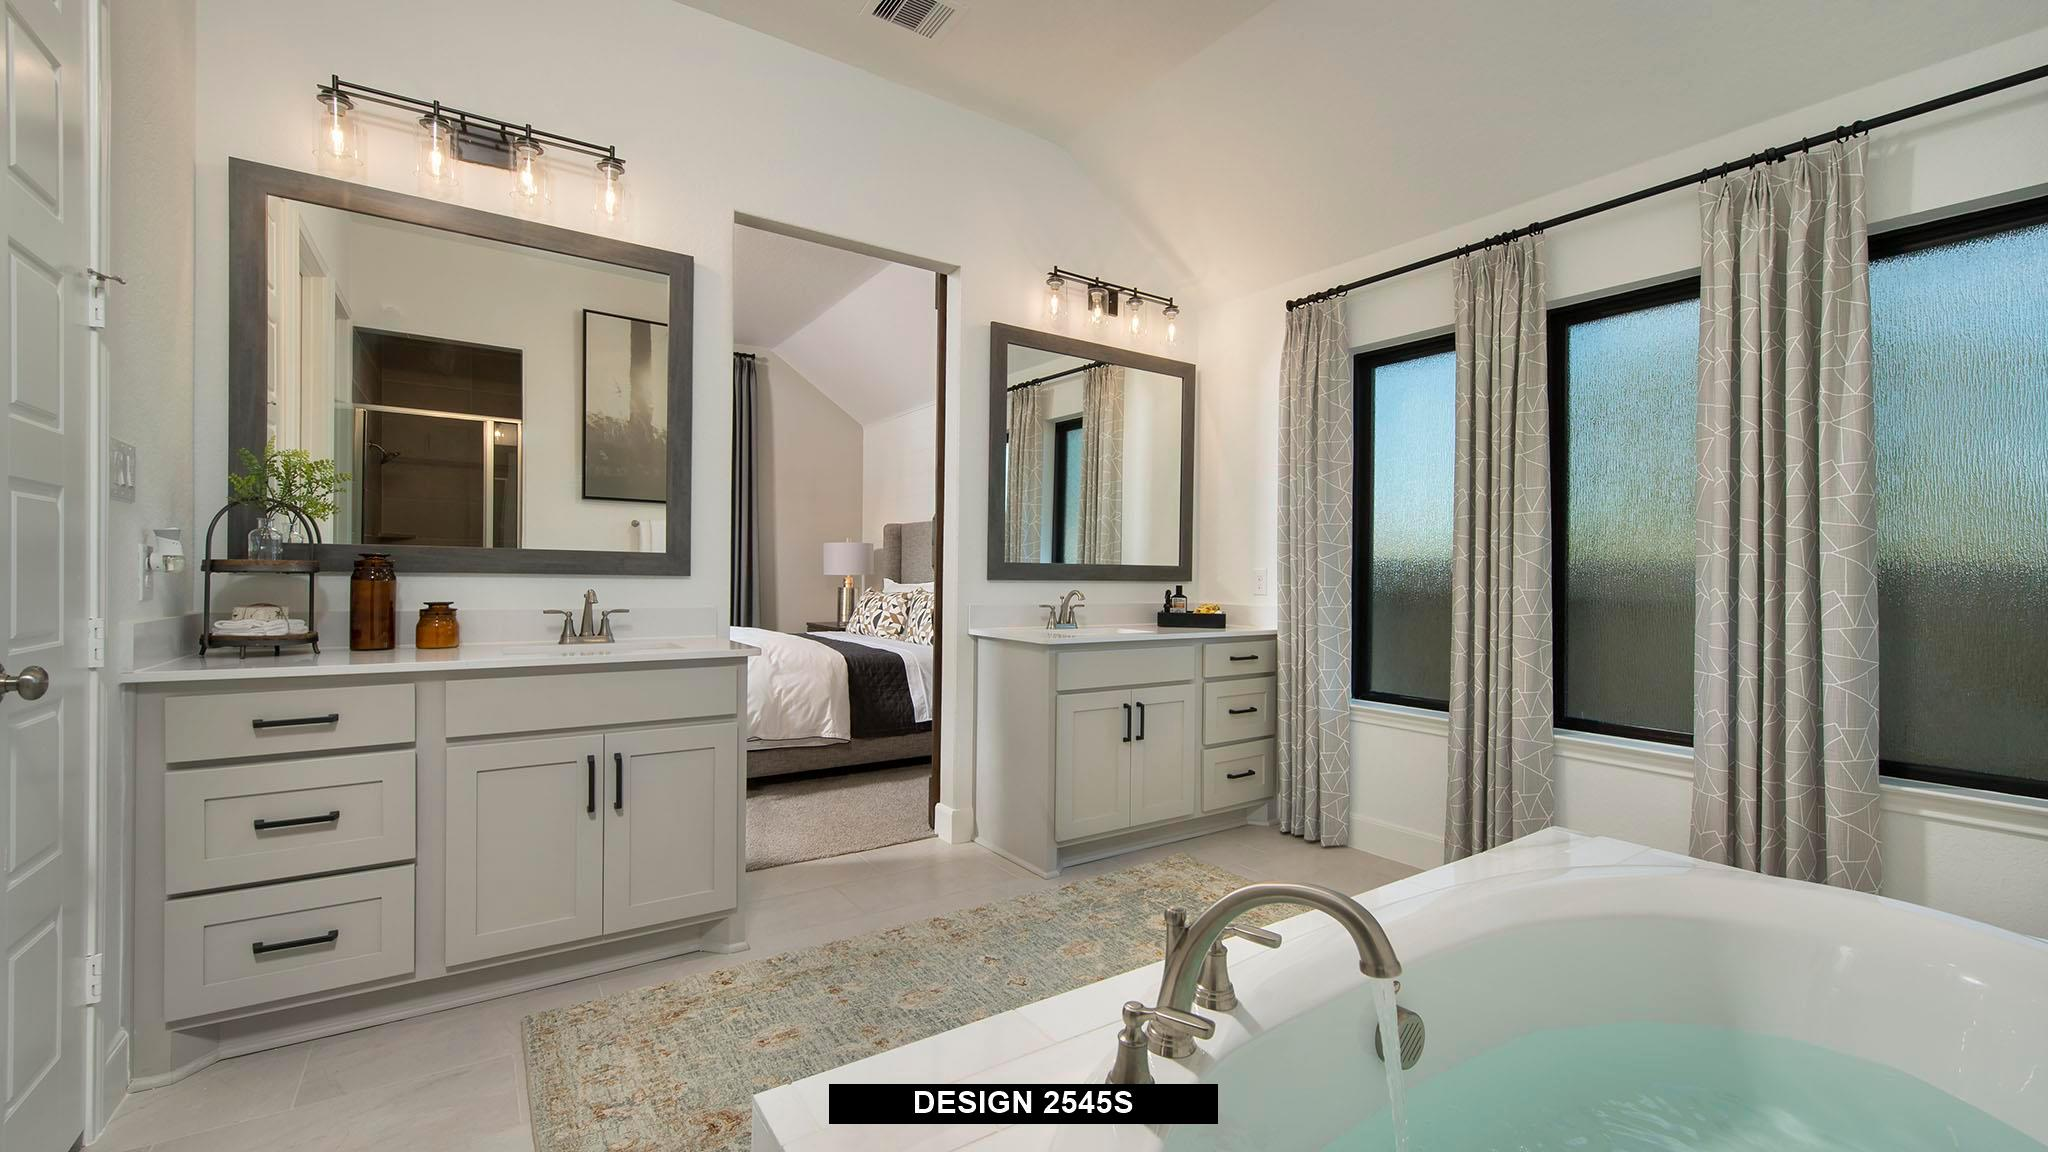 Bathroom featured in the 2545S By Perry Homes in San Antonio, TX